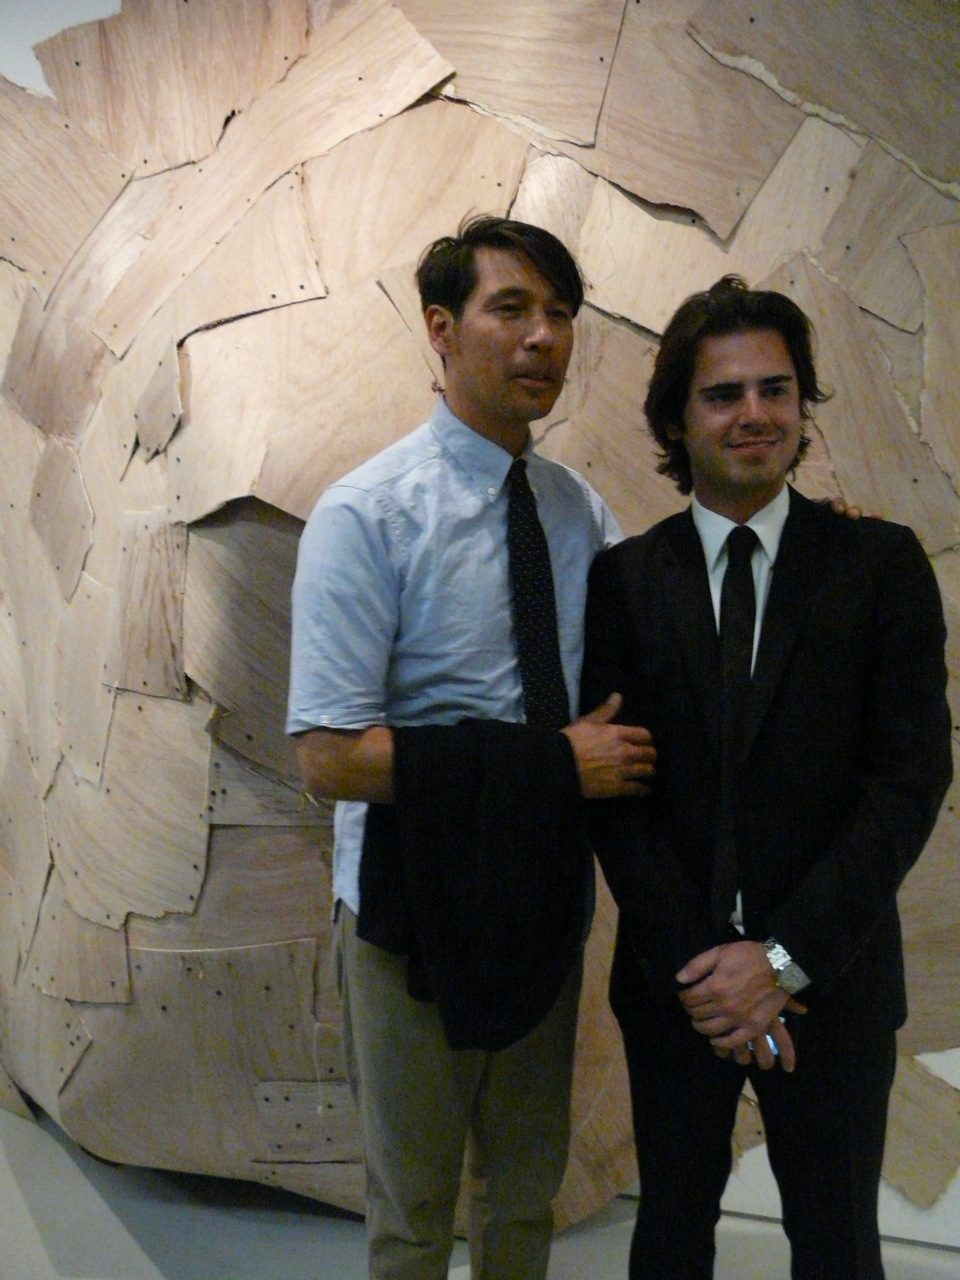 Barry McGee and Jared Najjar (co-owner of Prism)